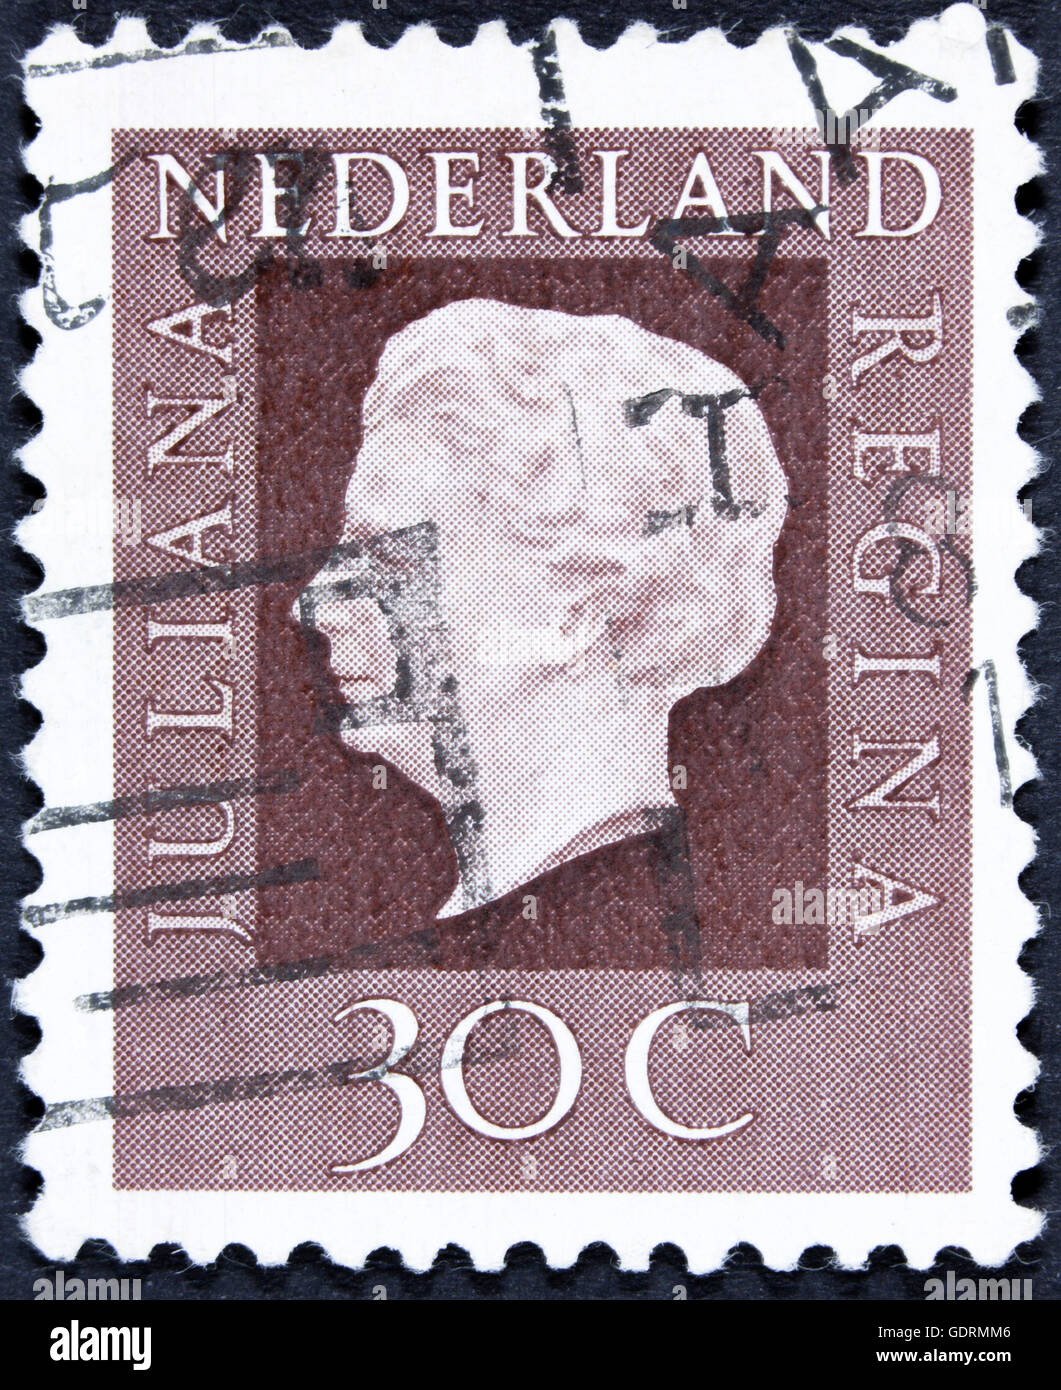 NETHERLANDS - CIRCA 1969: A stamp printed in Netherlands shows portrait of Queen regnant of Netherlands Juliana - Stock Image